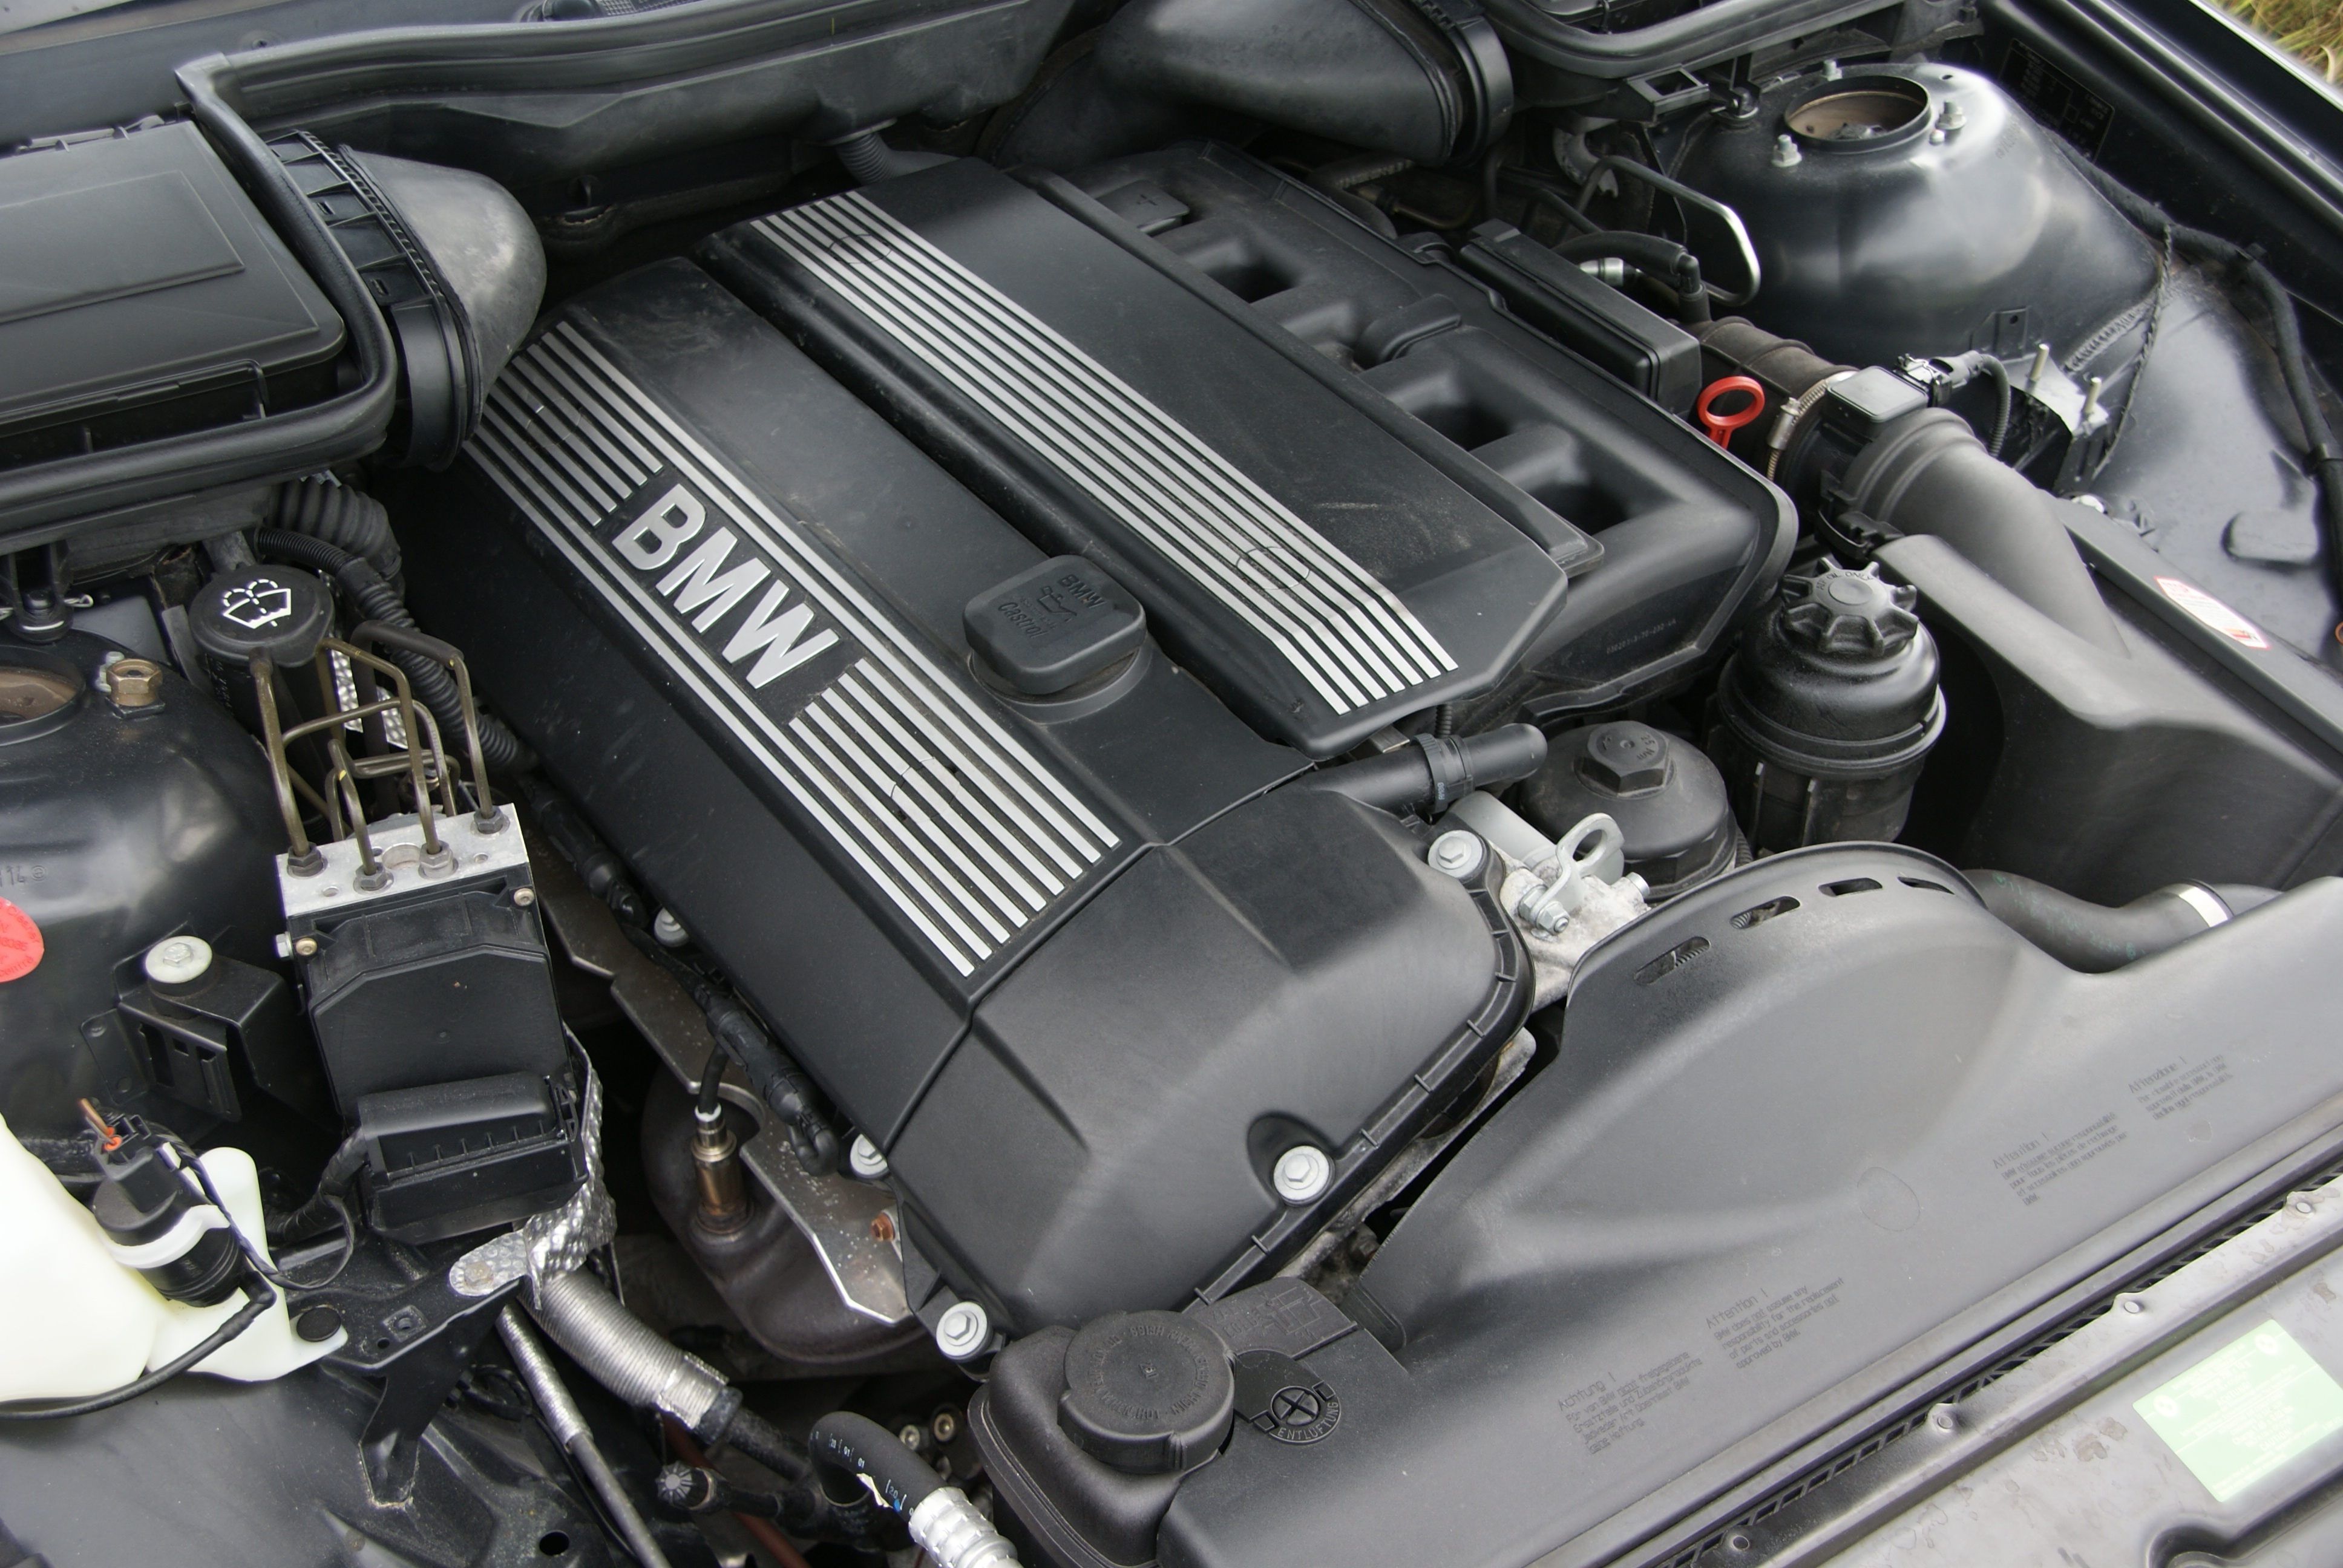 2000 bmw e46 engine diagram bmw m54 wikipedia  bmw m54 wikipedia